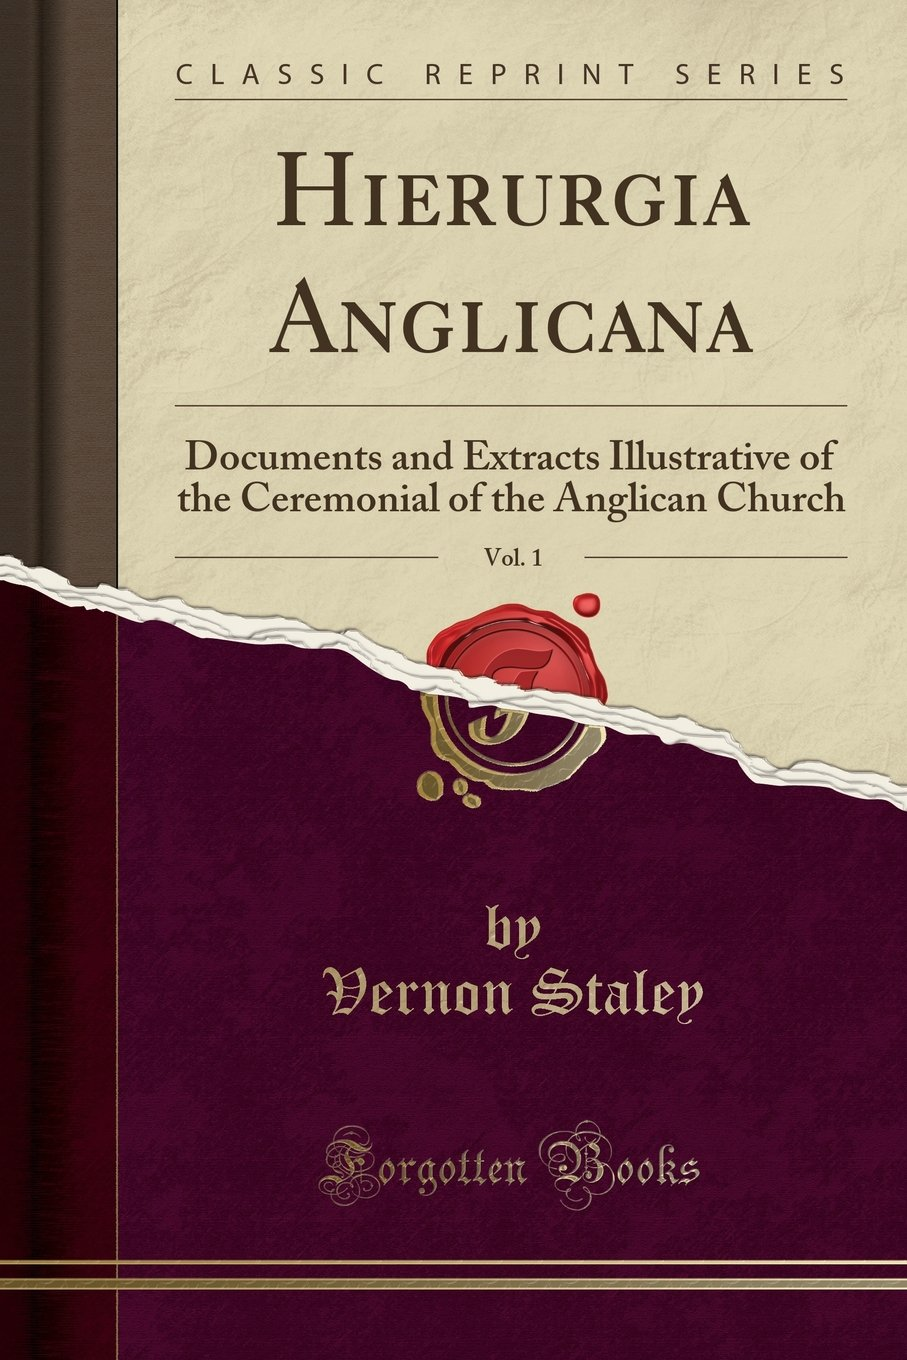 Download Hierurgia Anglicana, Vol. 1: Documents and Extracts Illustrative of the Ceremonial of the Anglican Church (Classic Reprint) ebook